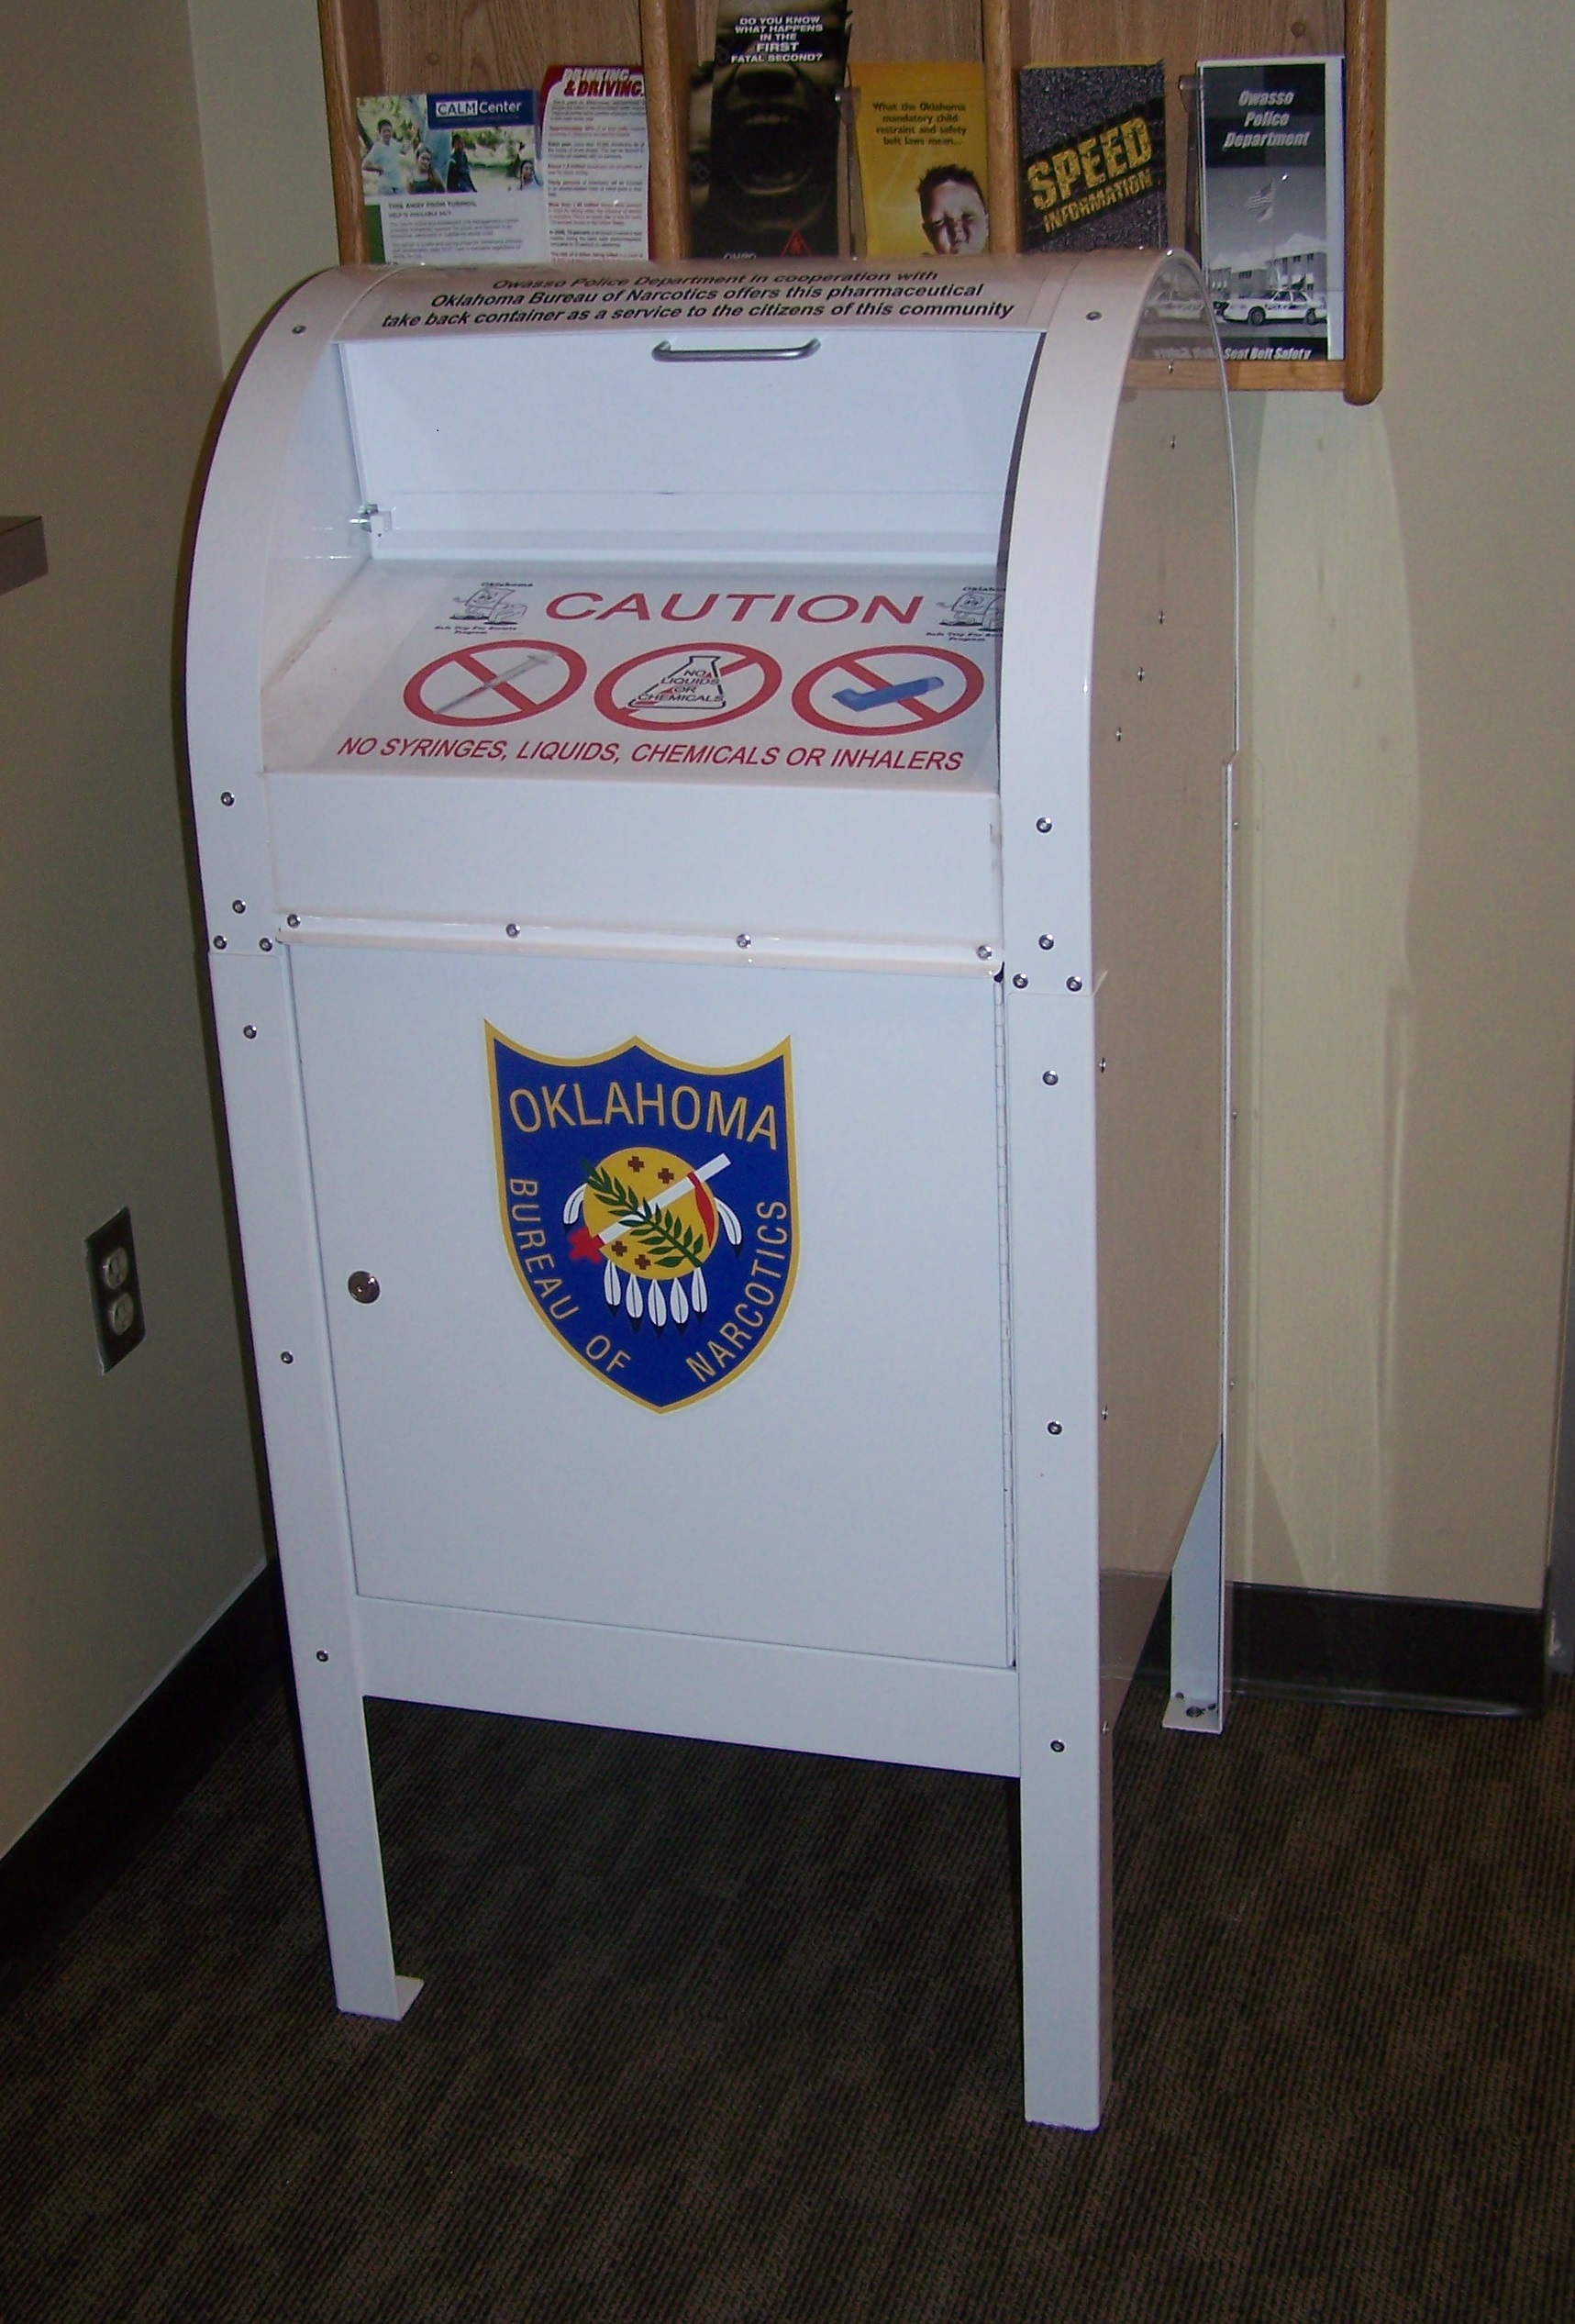 Prescription drug drop box located in lobby of Police Chief.